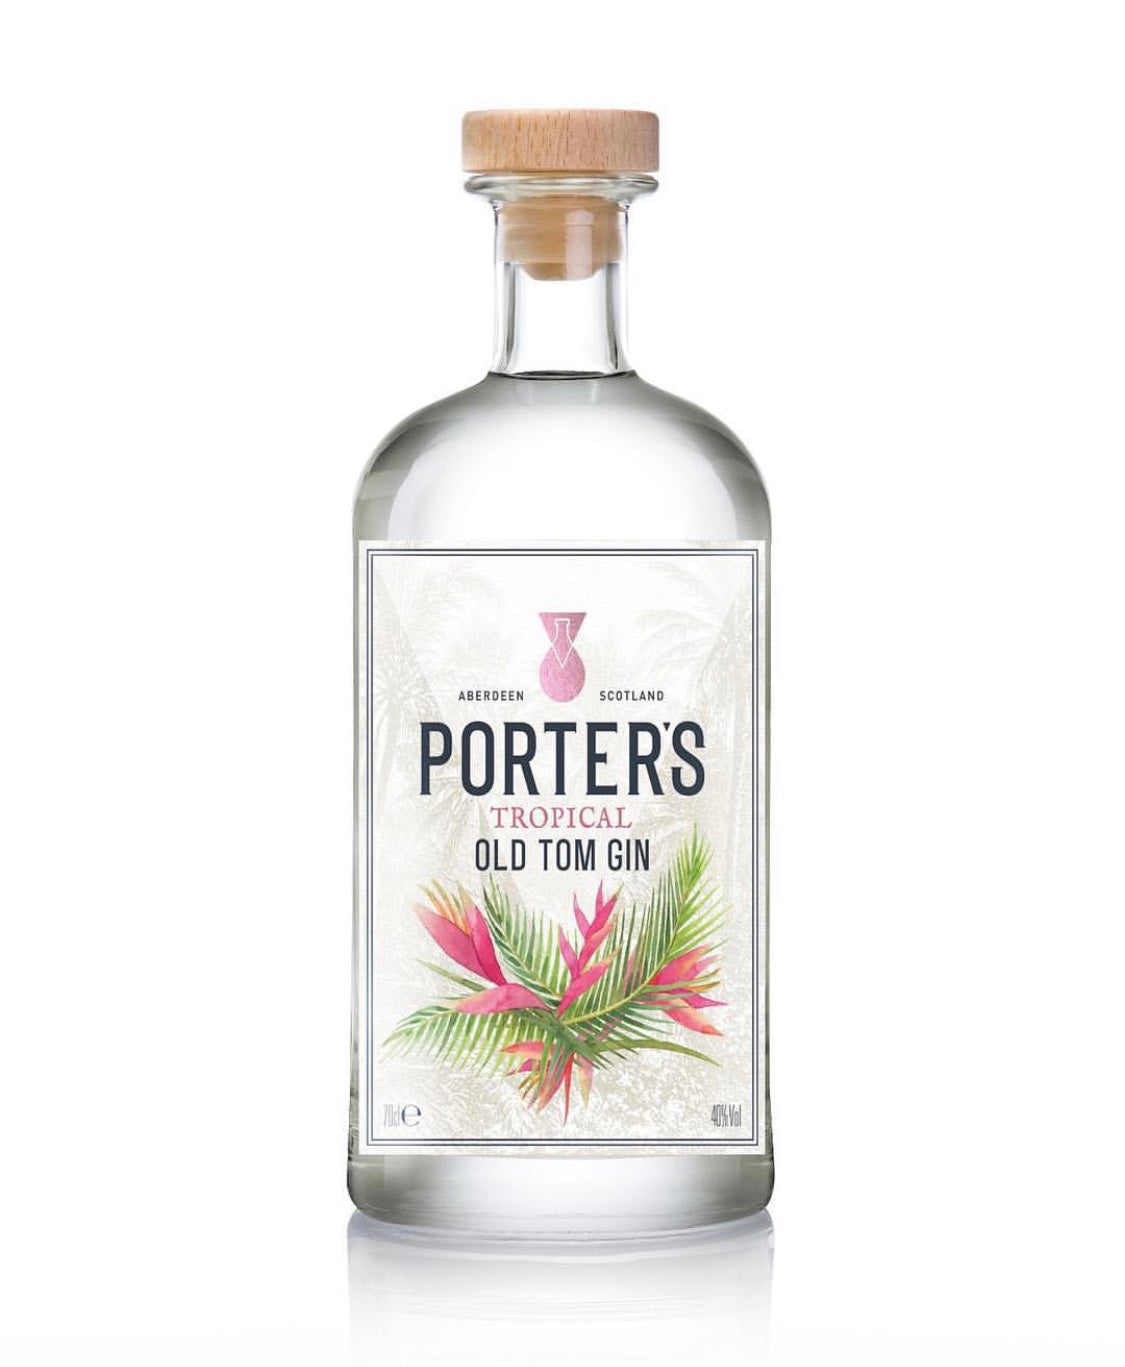 Porters Tropical Old Tom Gin